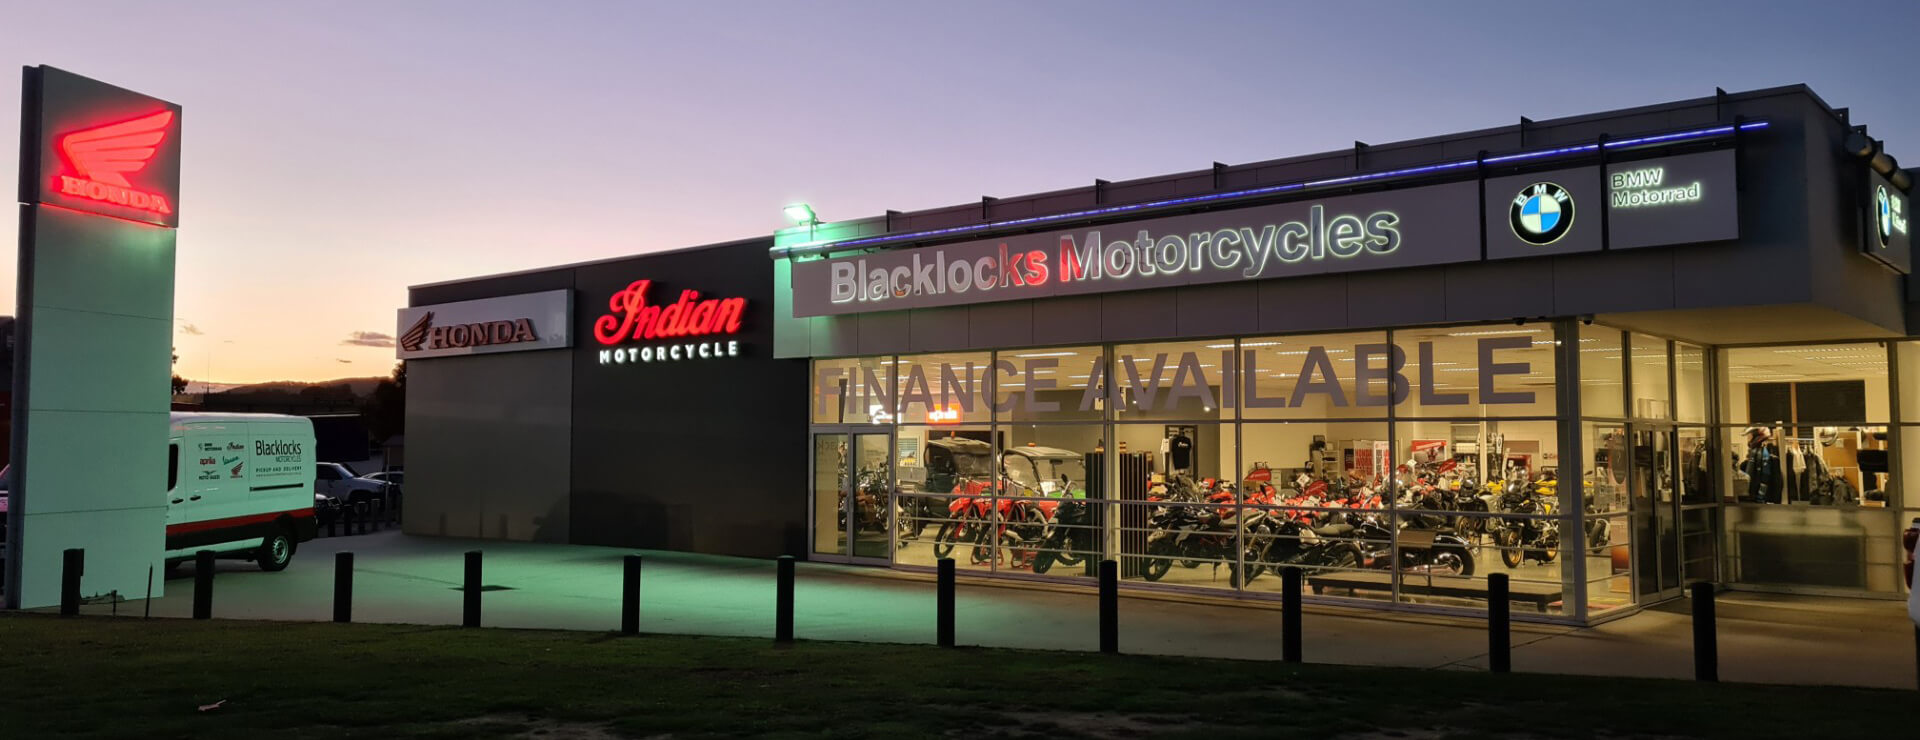 Find out more about Blacklocks Motorcycles